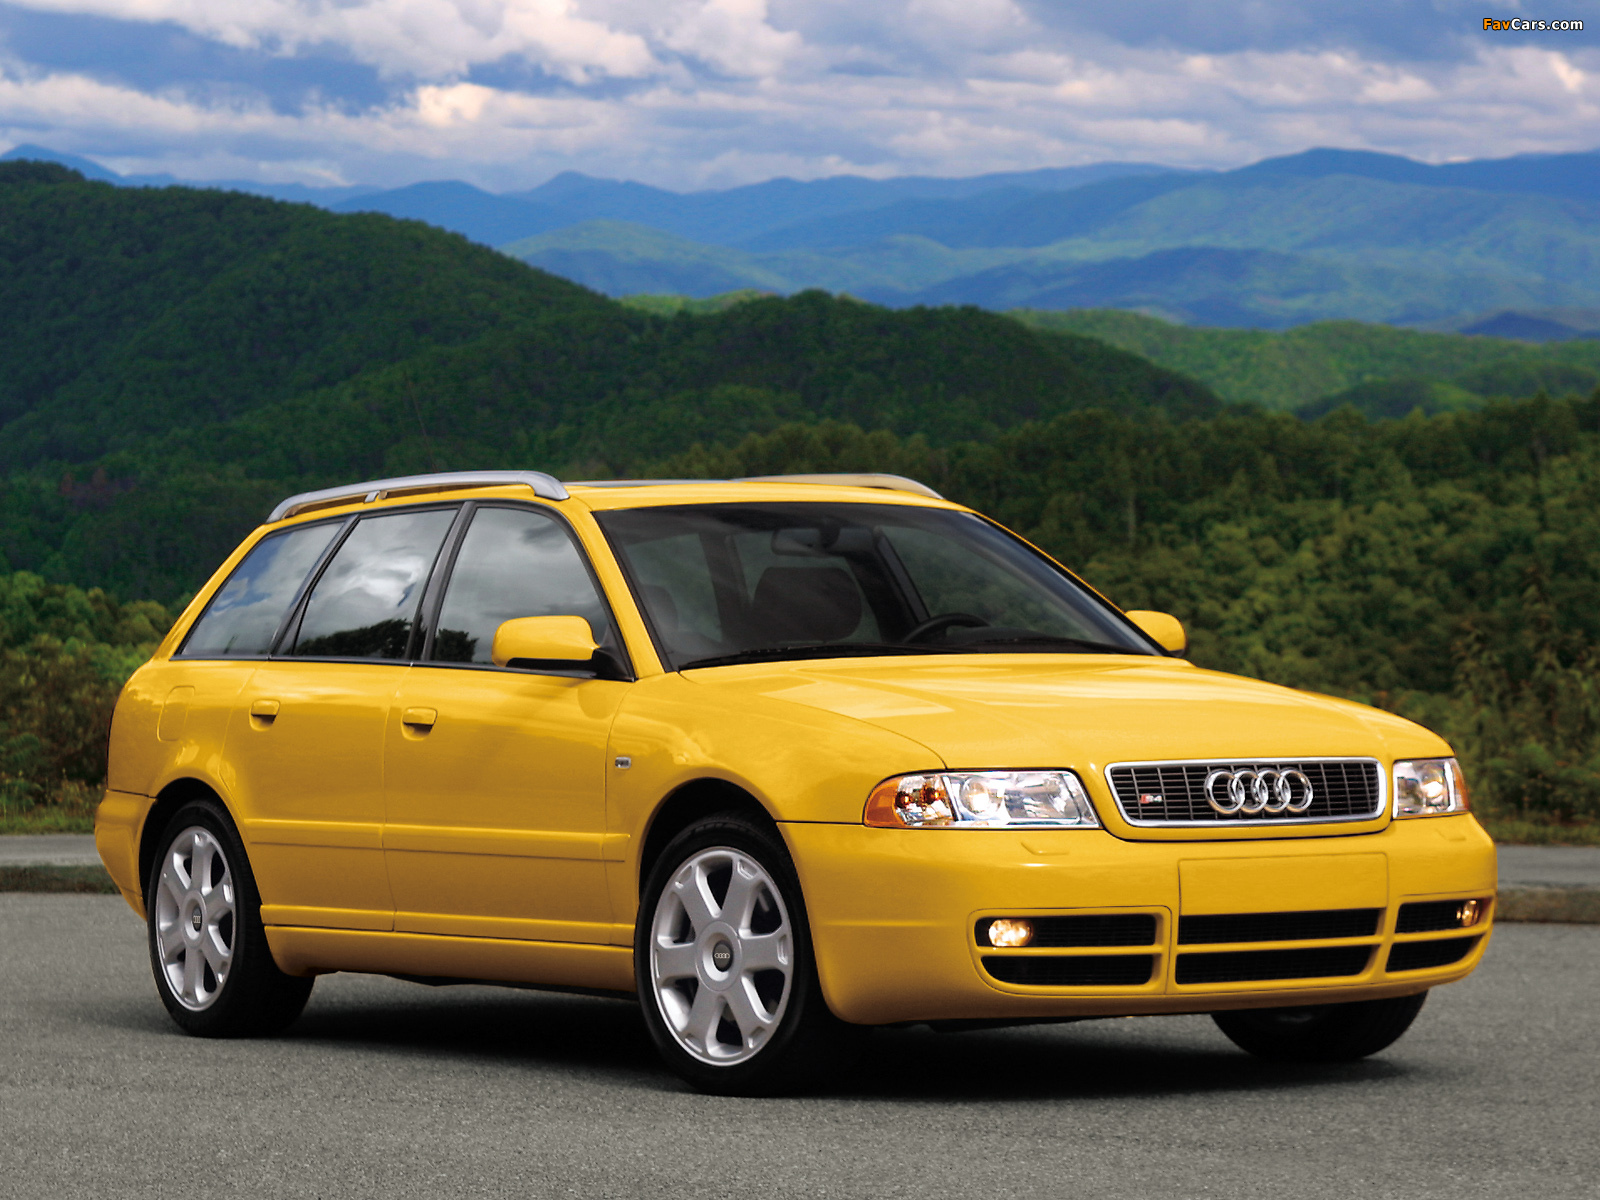 1997 Audi S4 avant (8d,b5) - pictures, information and ...